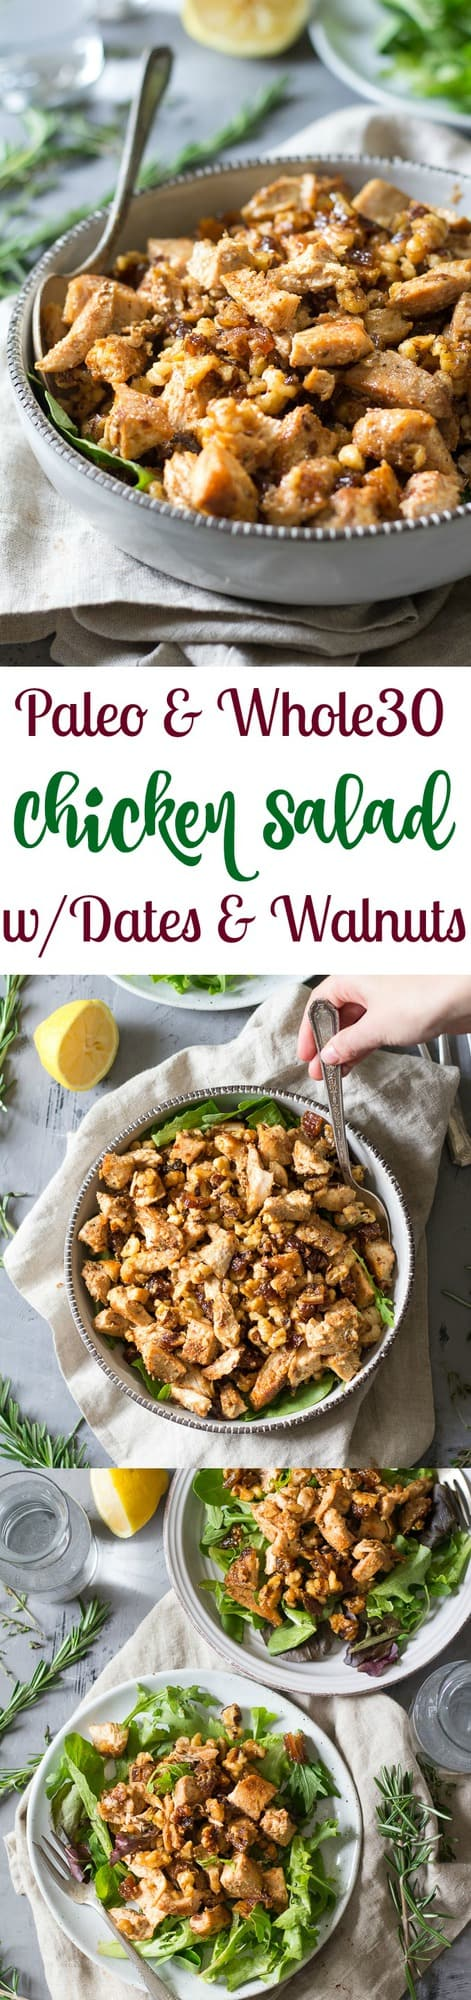 Paleo Chicken Salad with Dates and Walnuts {Whole30)